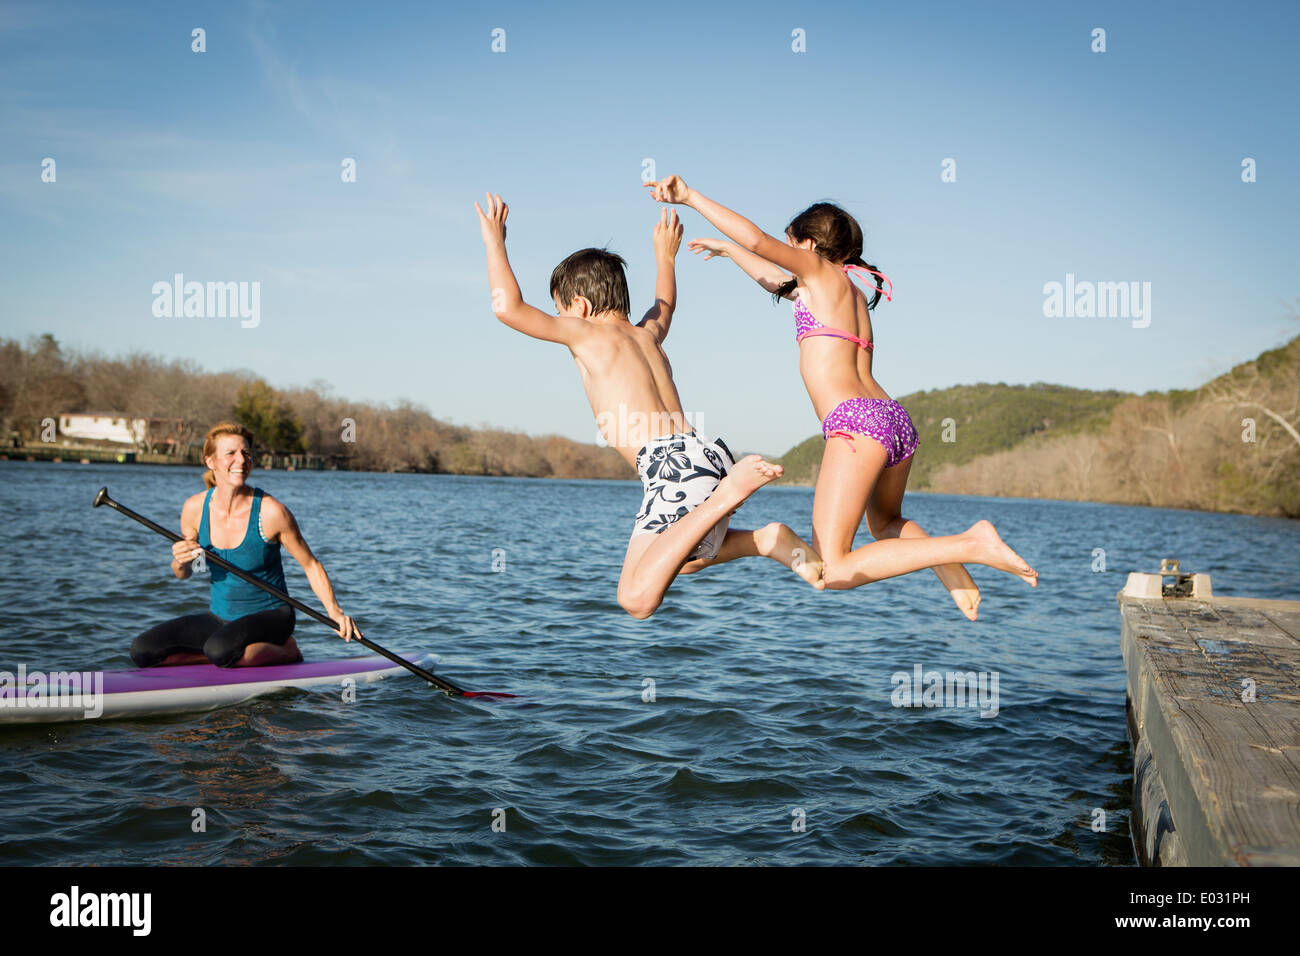 Two children leaping into the water from a jetty. Stock Photo